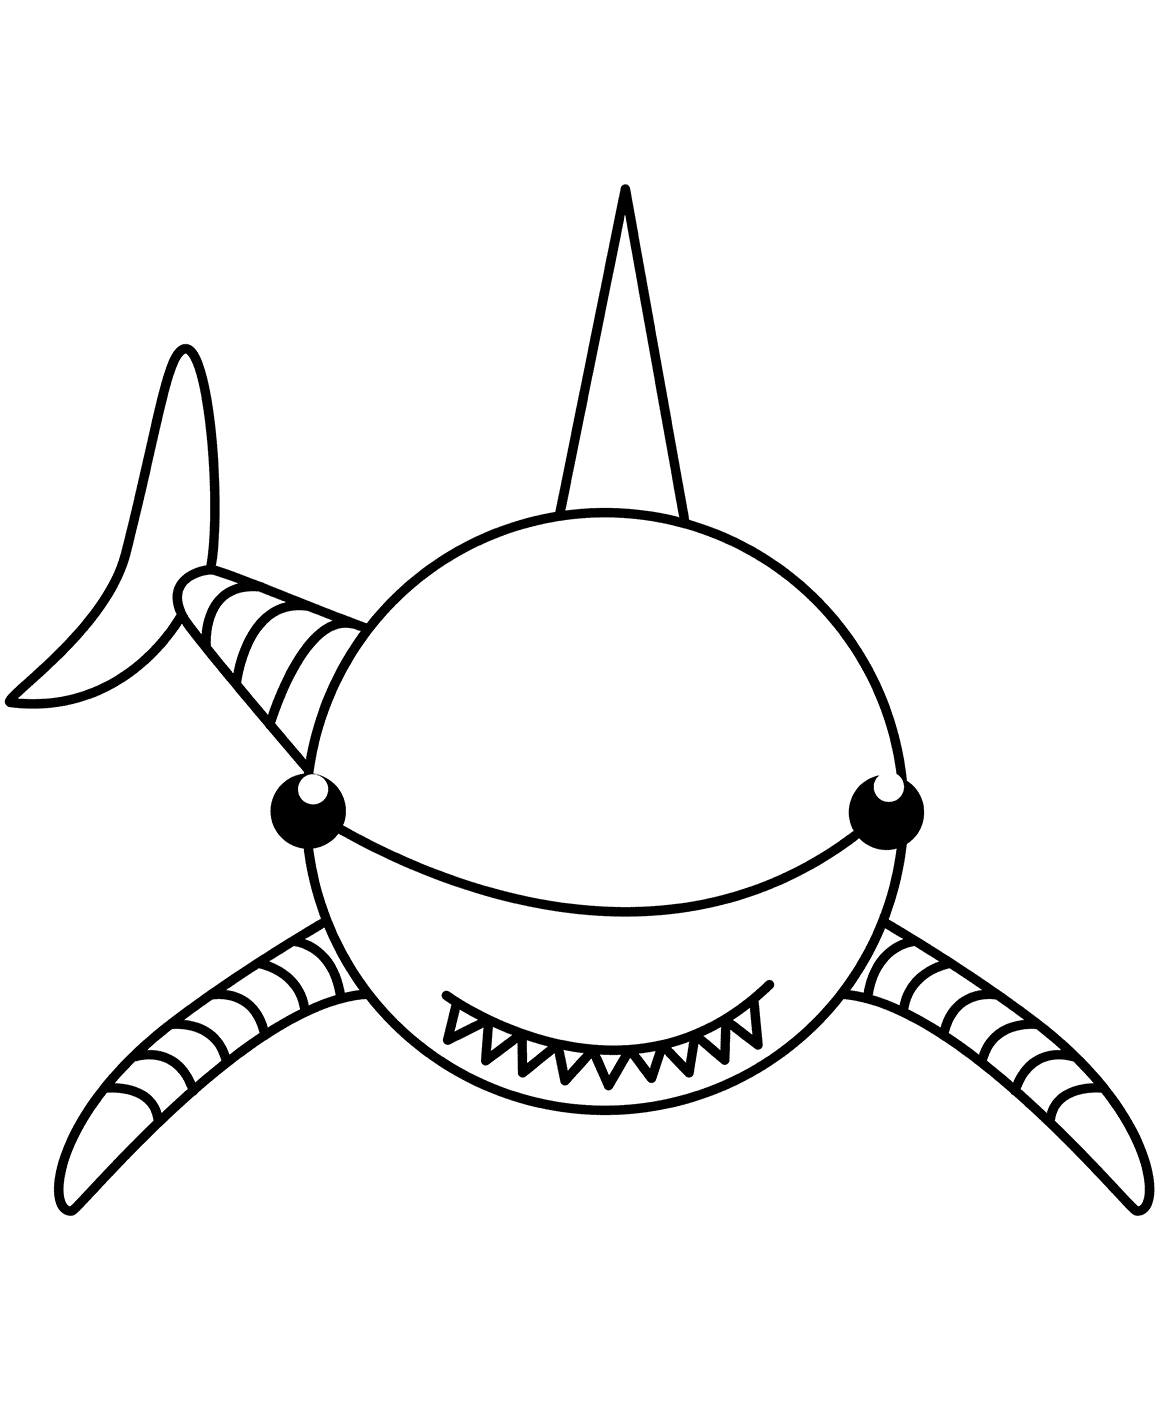 shark picture to color top 20 shark coloring pages for your little ones shark picture color to